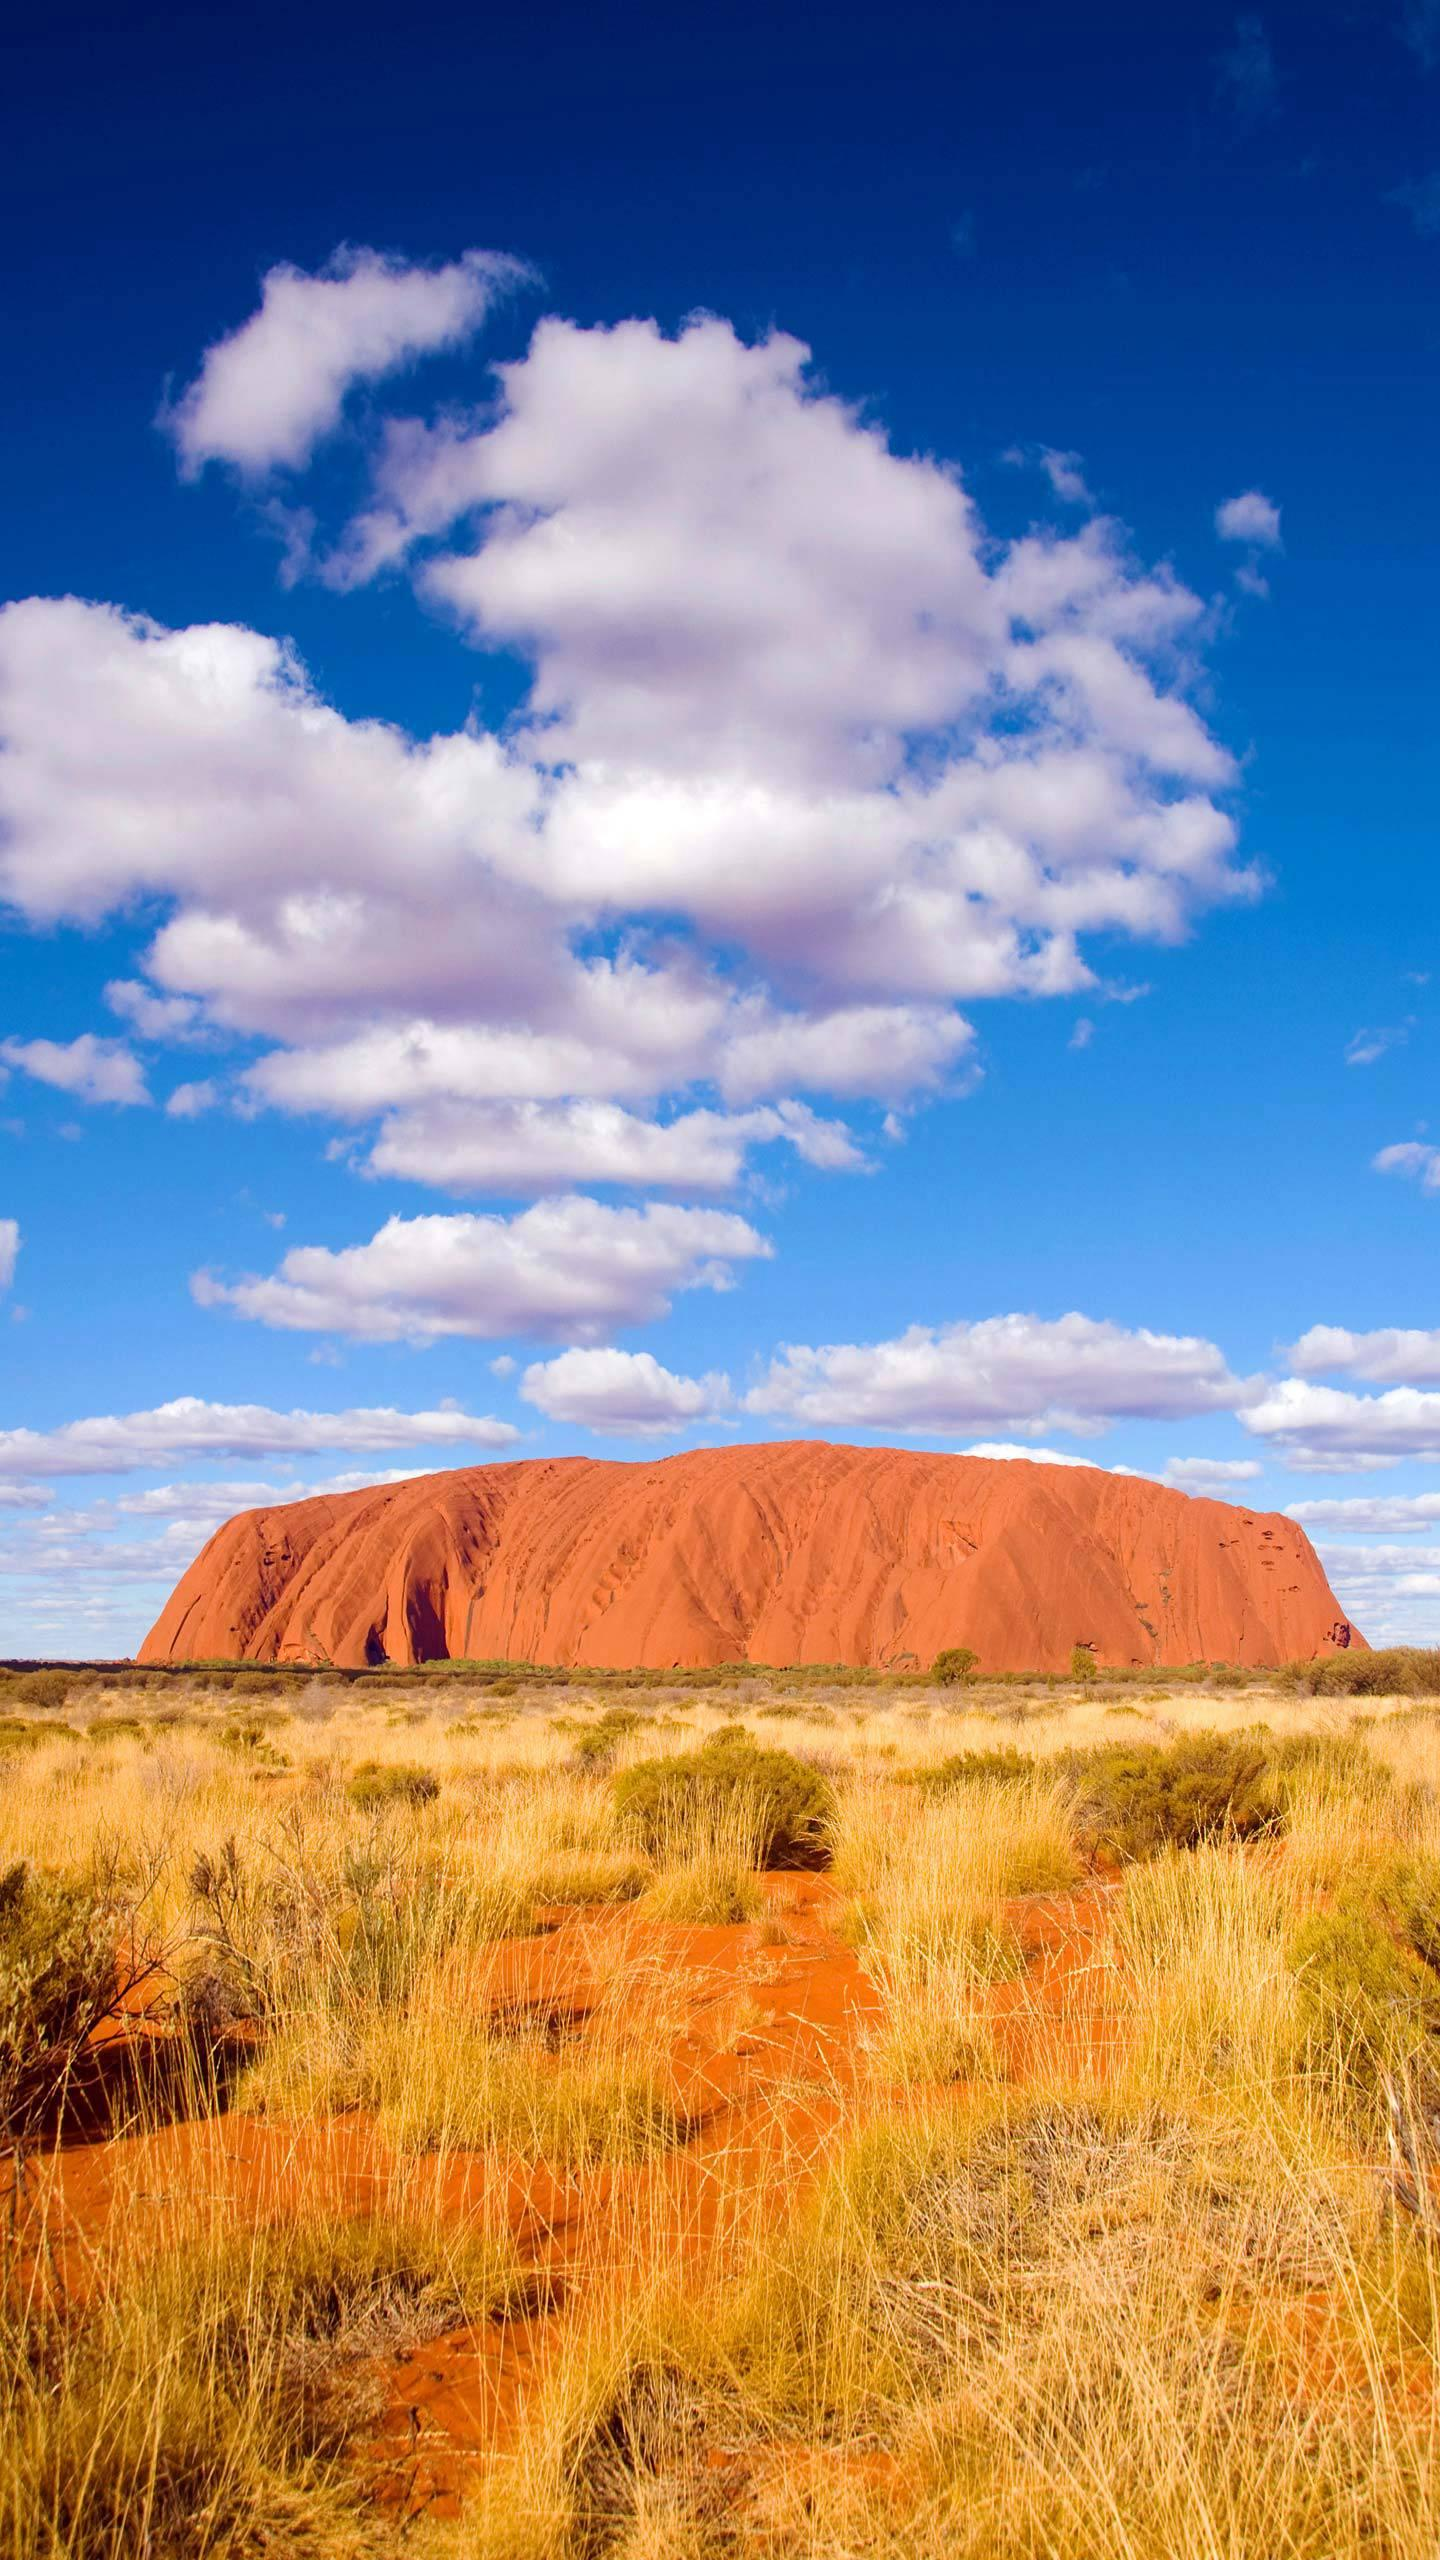 The mystery of Ayers Rock's discoloration. Australia's Ayers Rock will change color with different seasons and different weathers. It is amazing.